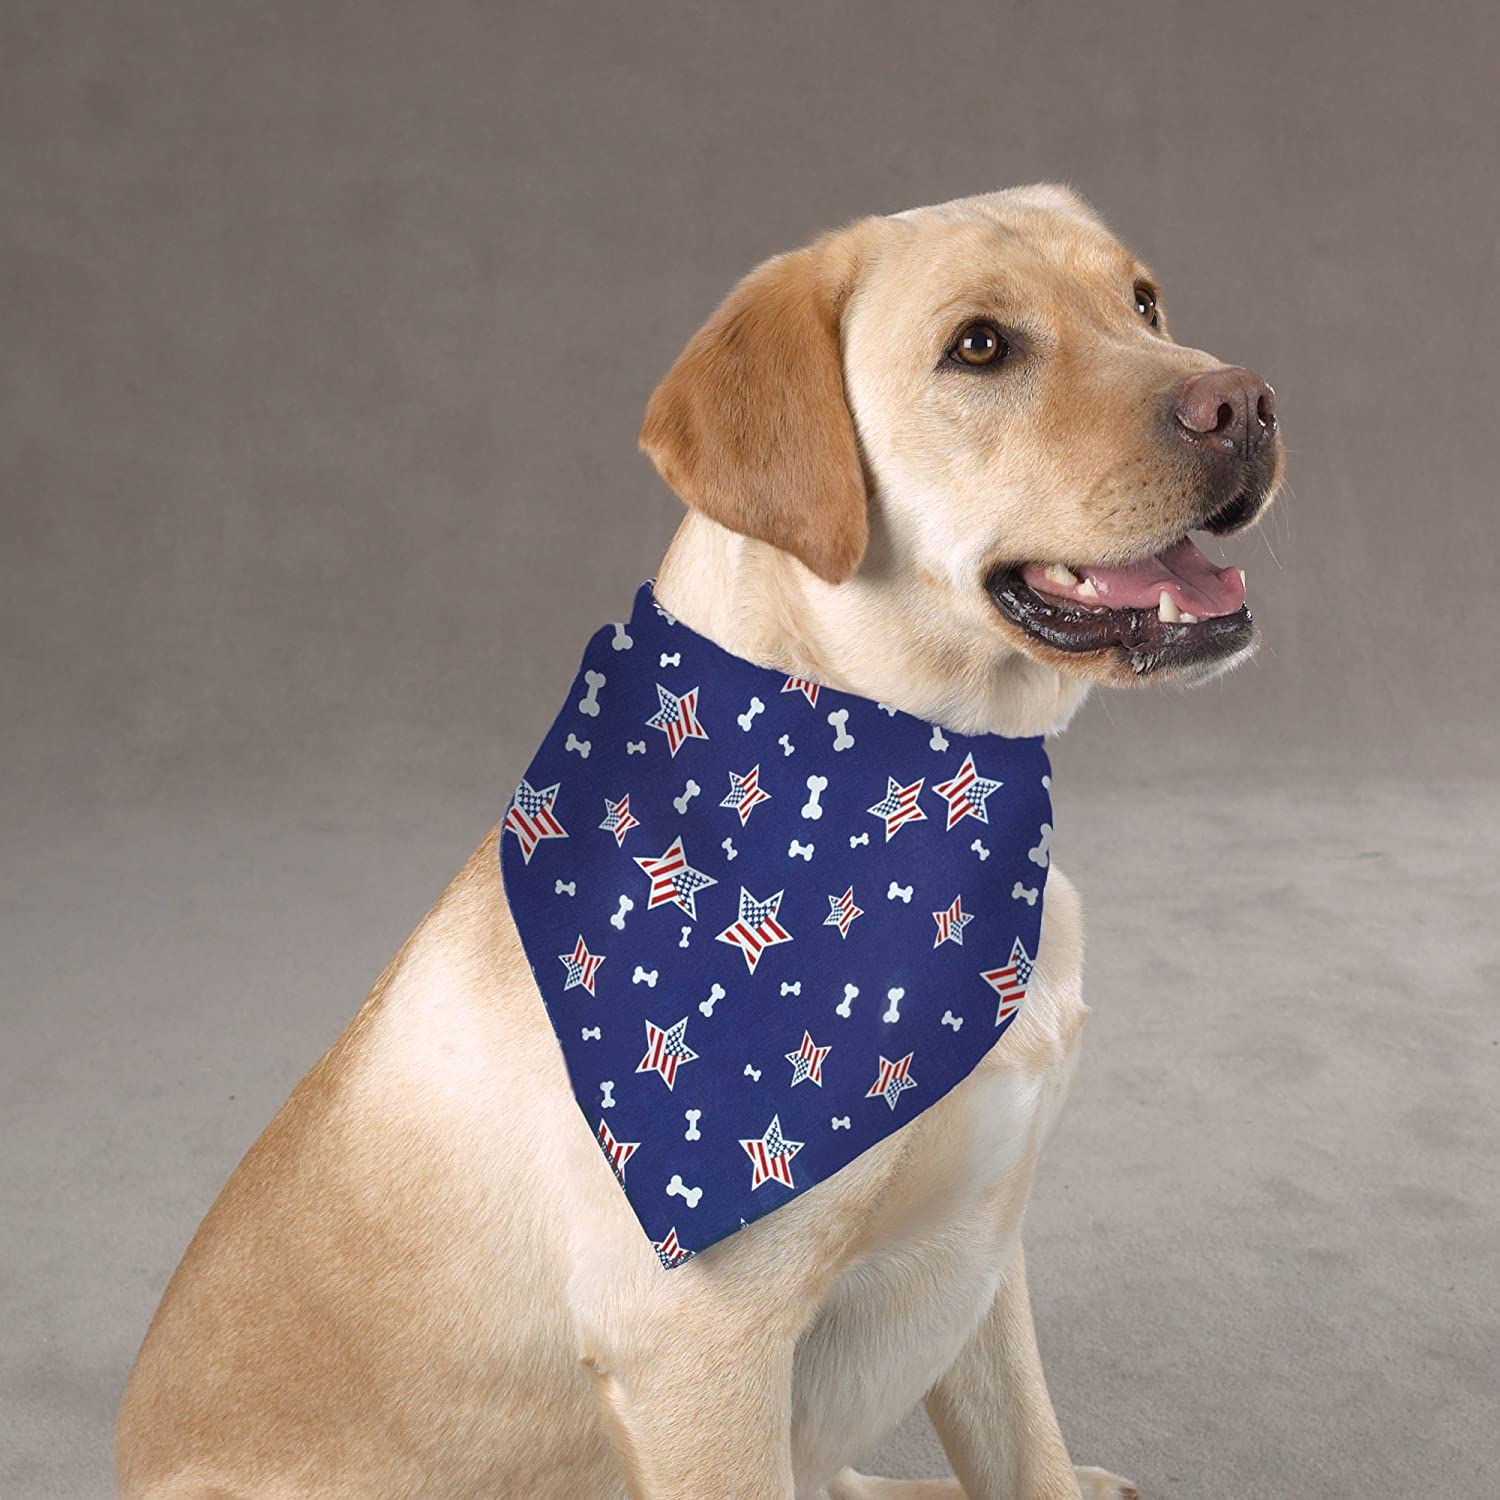 Aria Bone in The USA Bandanas for Dogs